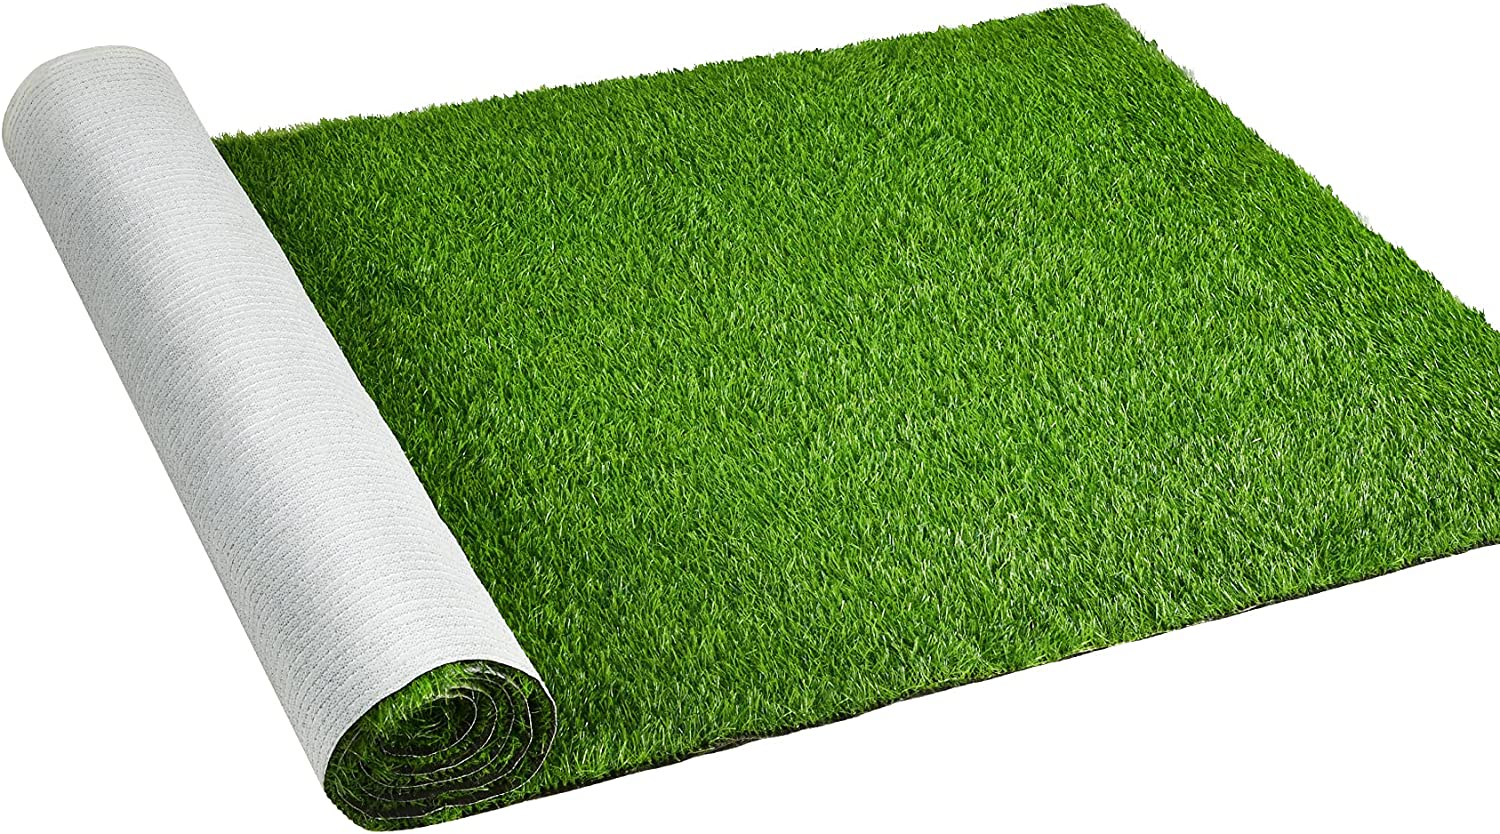 DearHouse Artificial Grass Mats Lawn Carpet, Synthetic Rug Indoor Outdoor Landscape, Fake Faux Turf for Garden Home Decor (3.28 X 6.56 Ft)